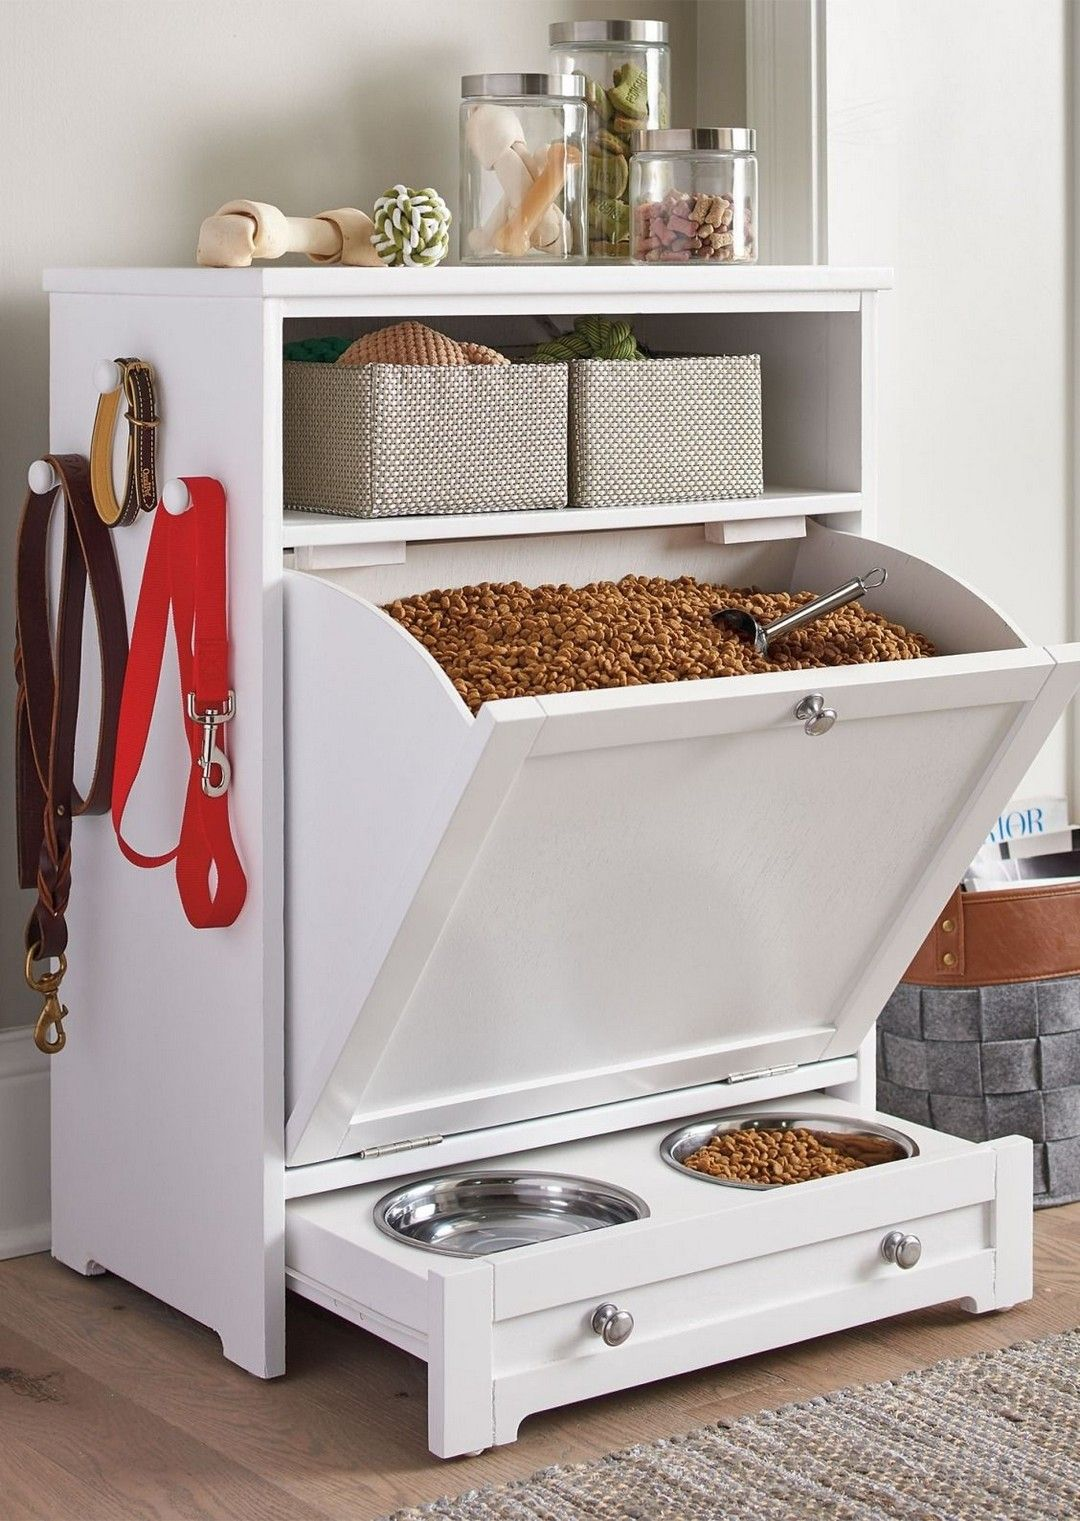 18 genius solutions for your pets in the kitchen | diy kitchen ideas